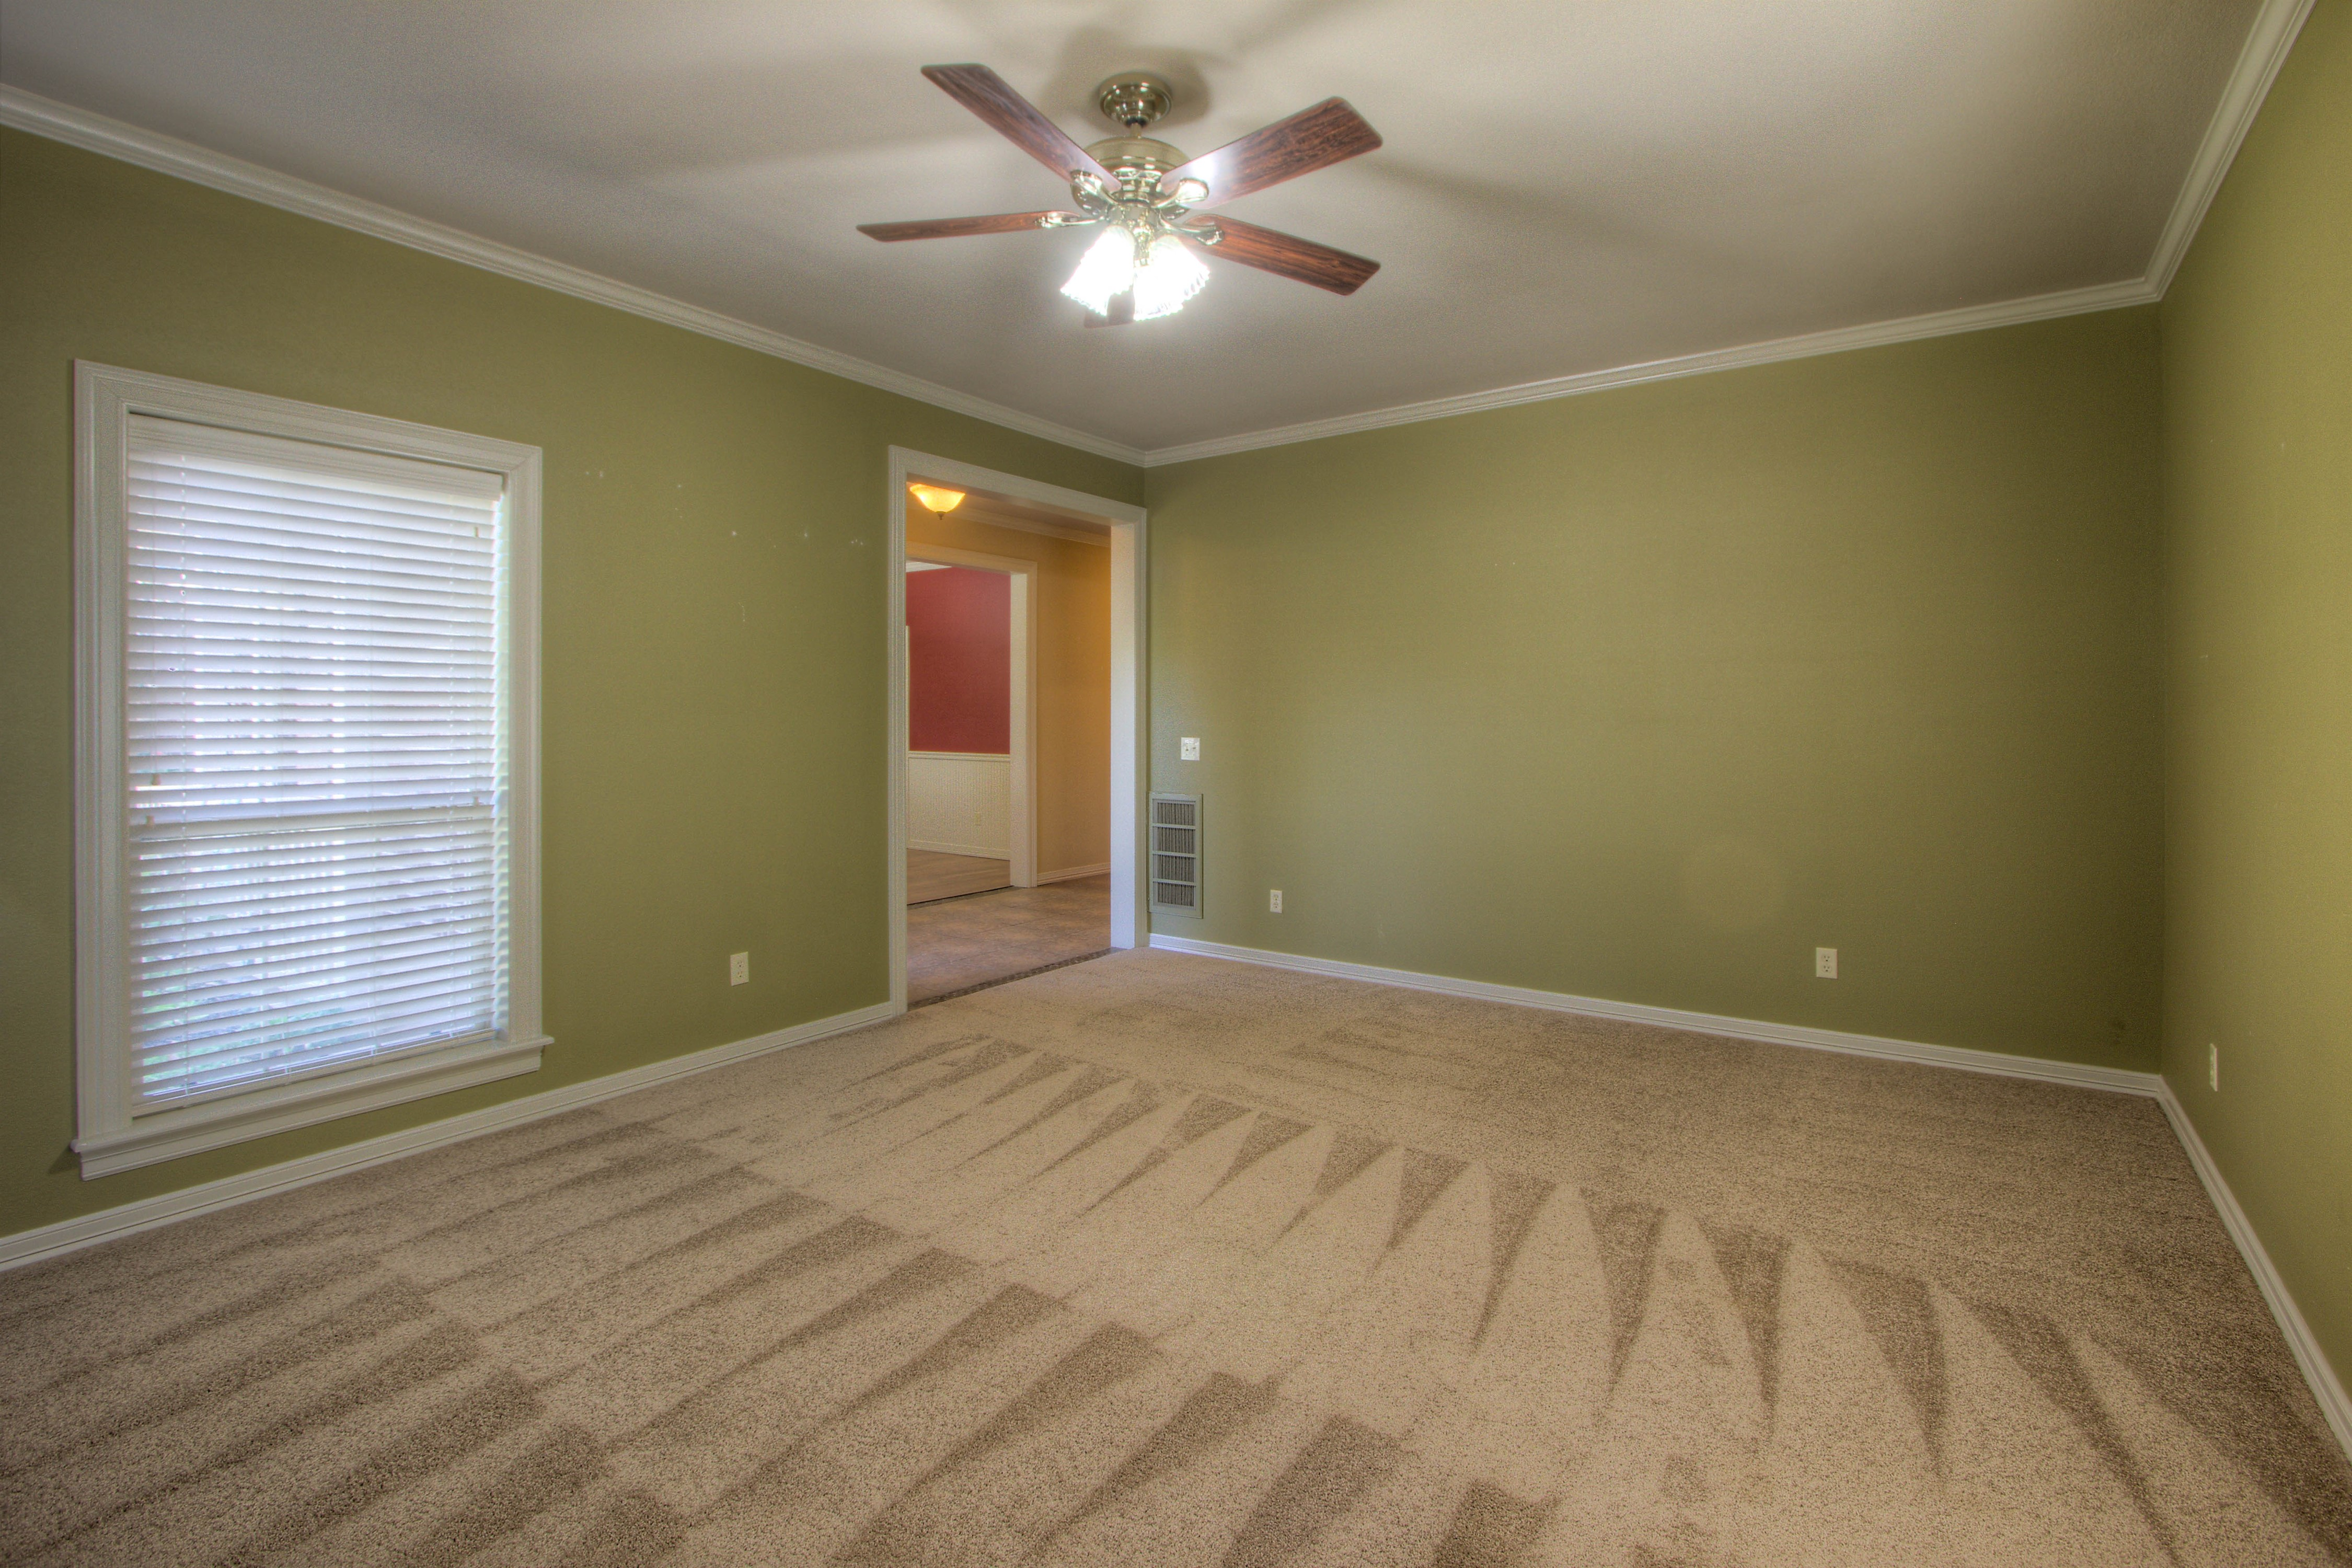 18117 S 154th East Avenue Property Photo 3